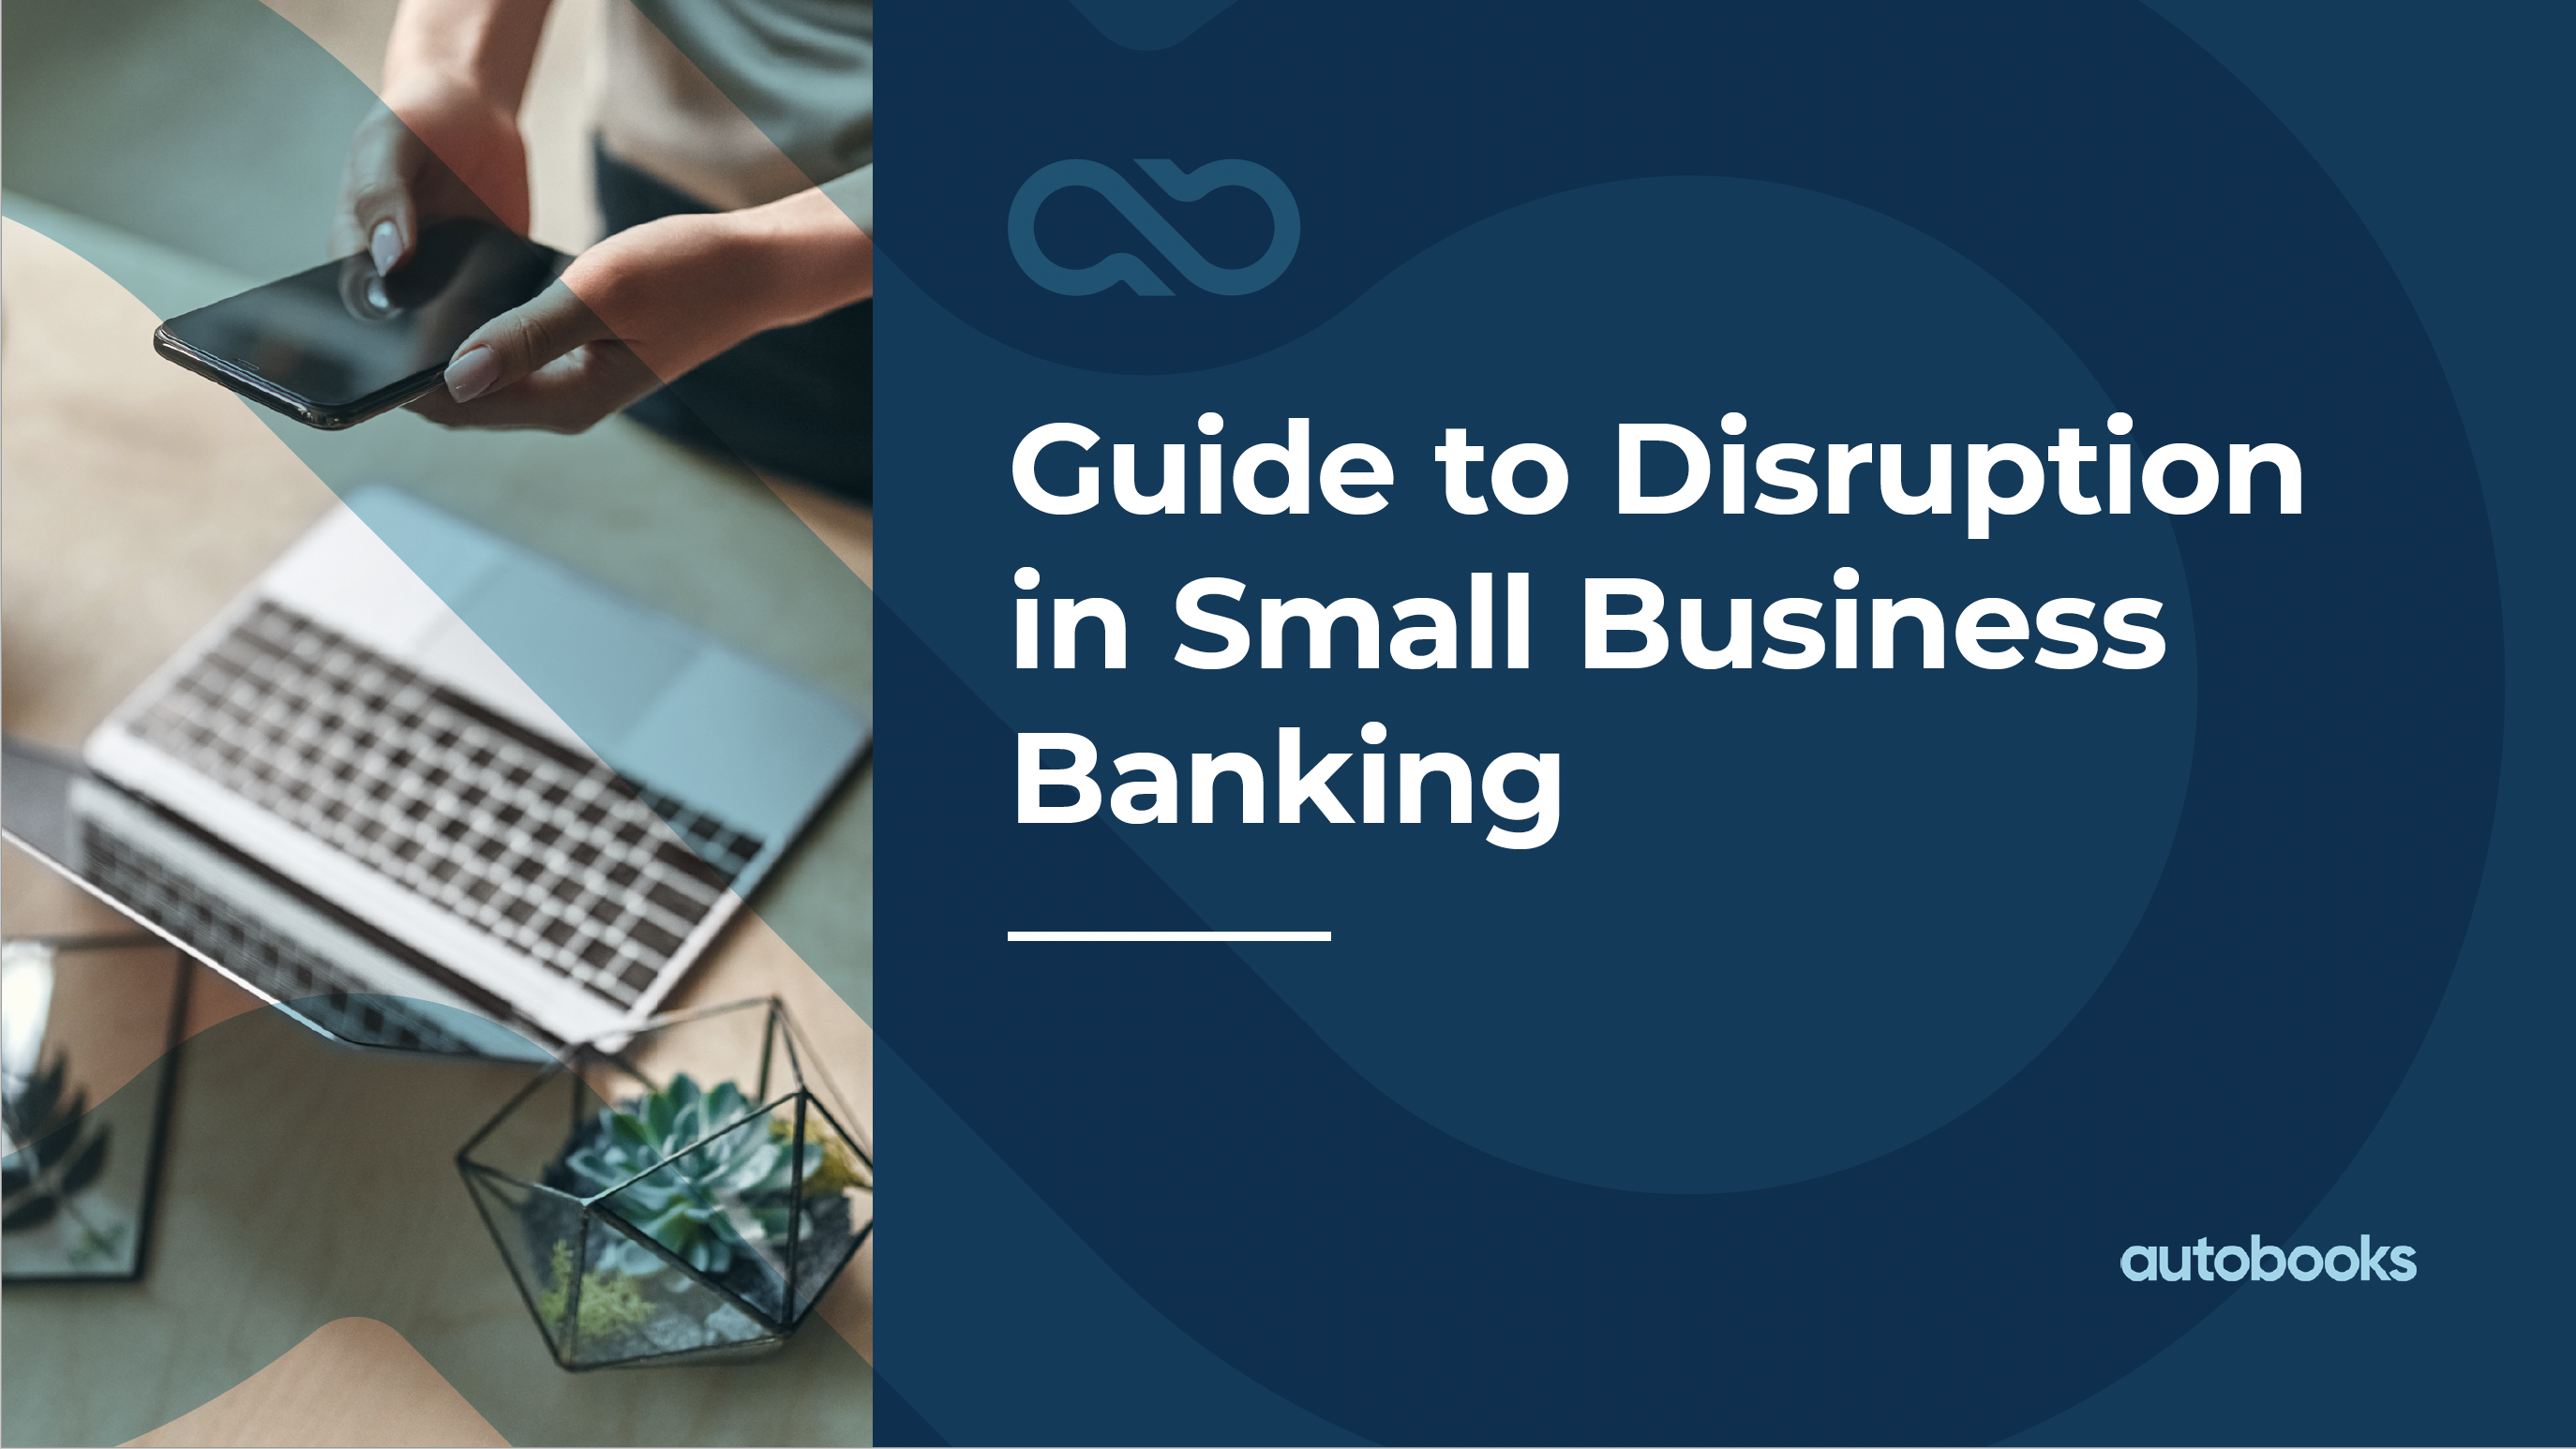 Autobooks Guide toDisruption in Small Business Banking